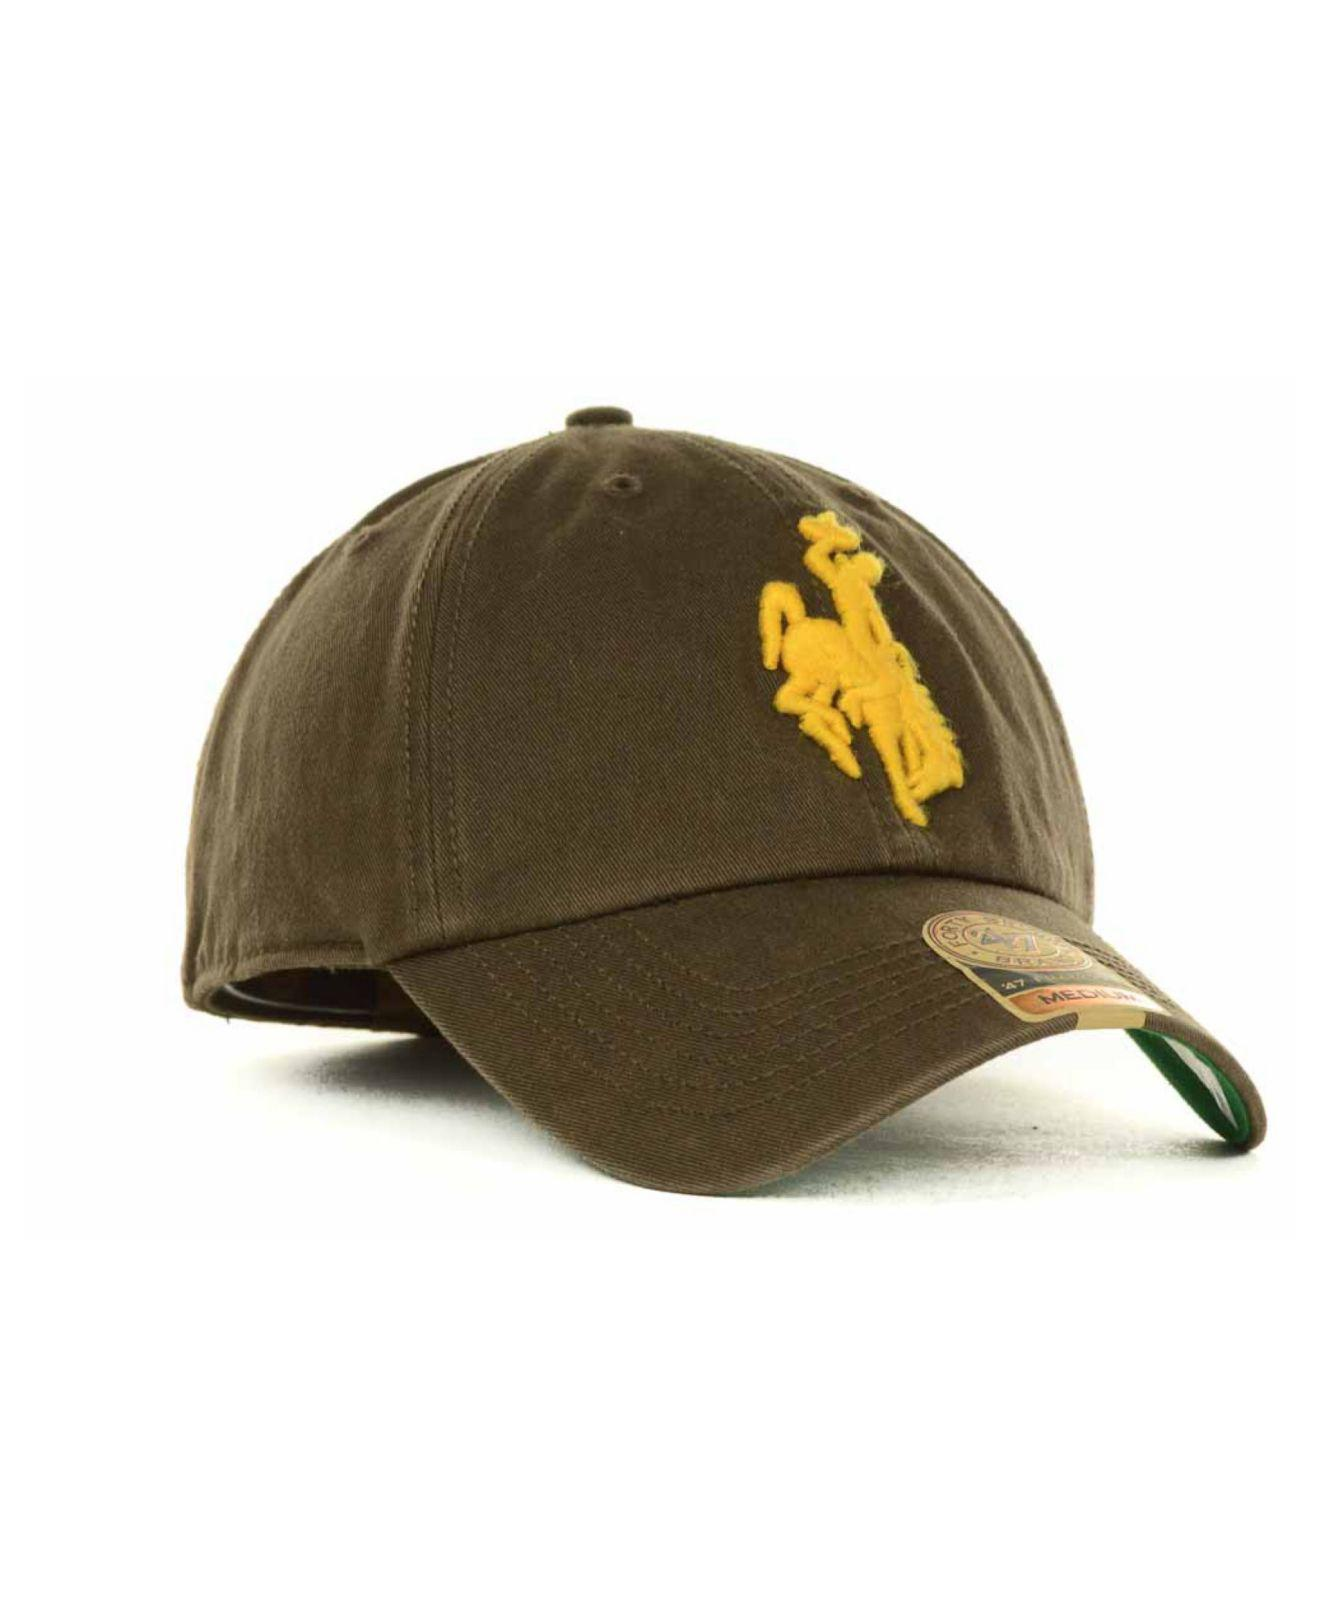 3a8be80cdc1 ... Wyoming Cowboys Franchise Cap for Men - Lyst. View fullscreen